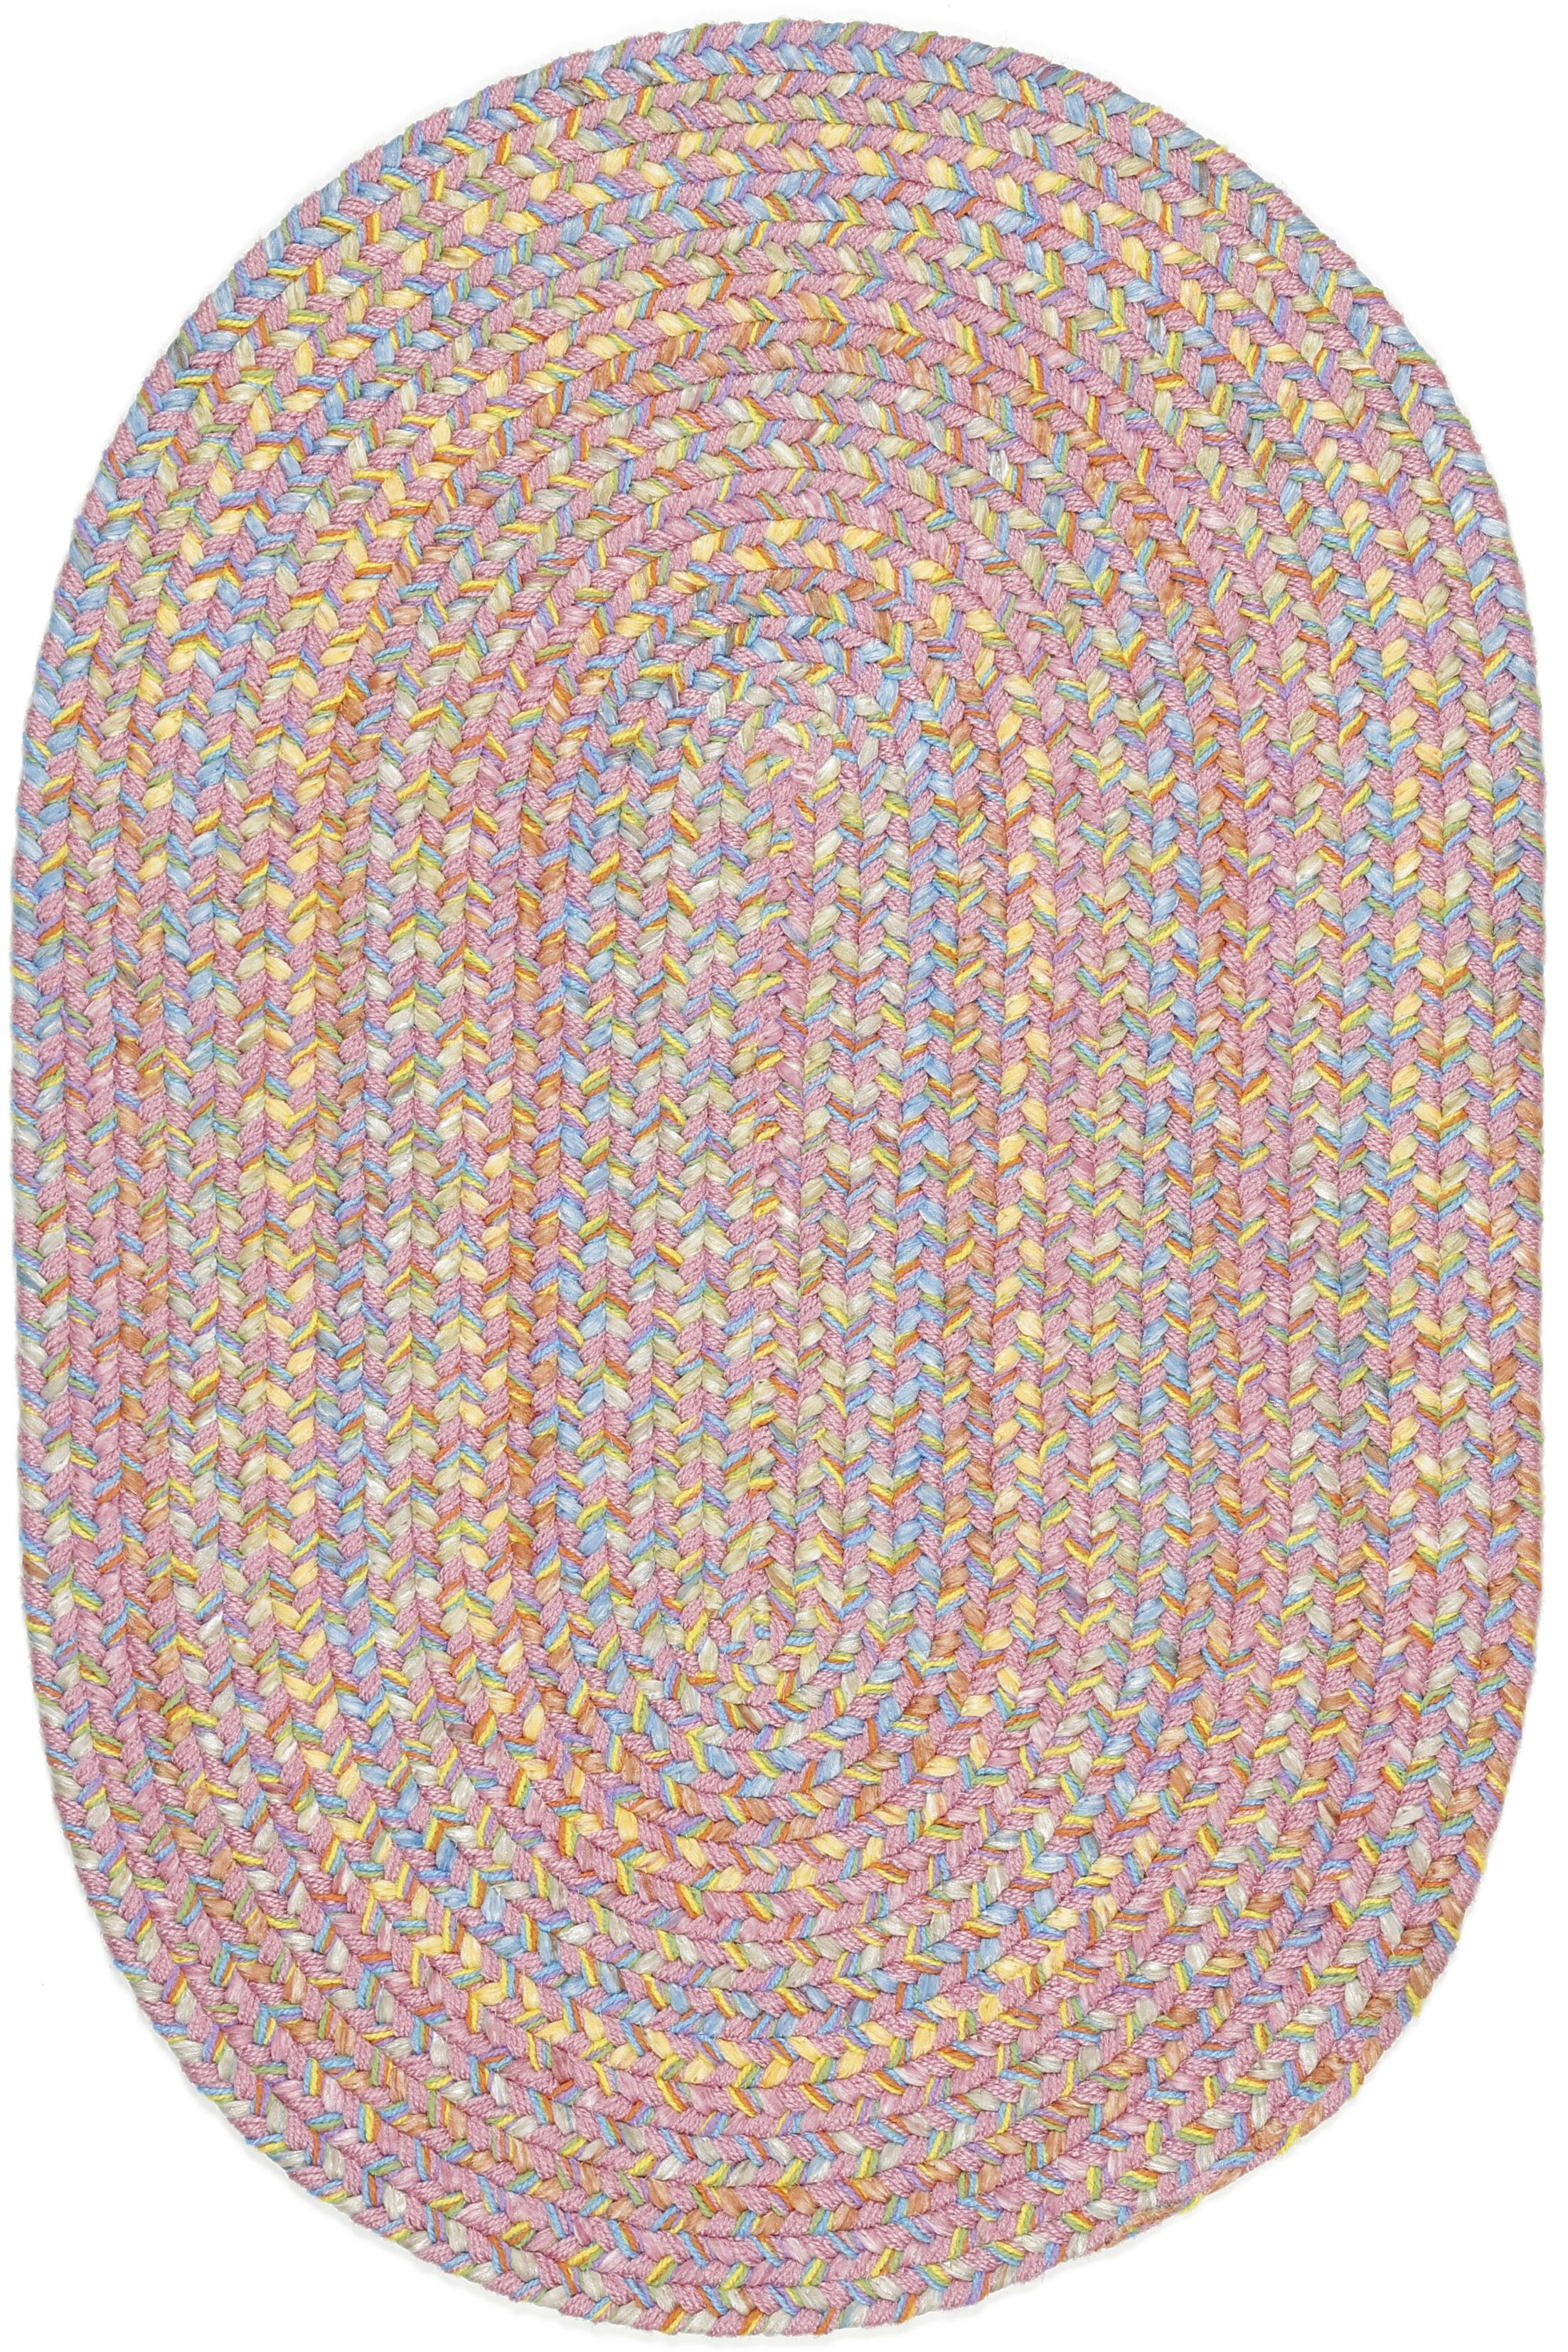 Saidpur Pink Indoor/Outdoor Area Rug Rug Size: Oval 7' x 9'